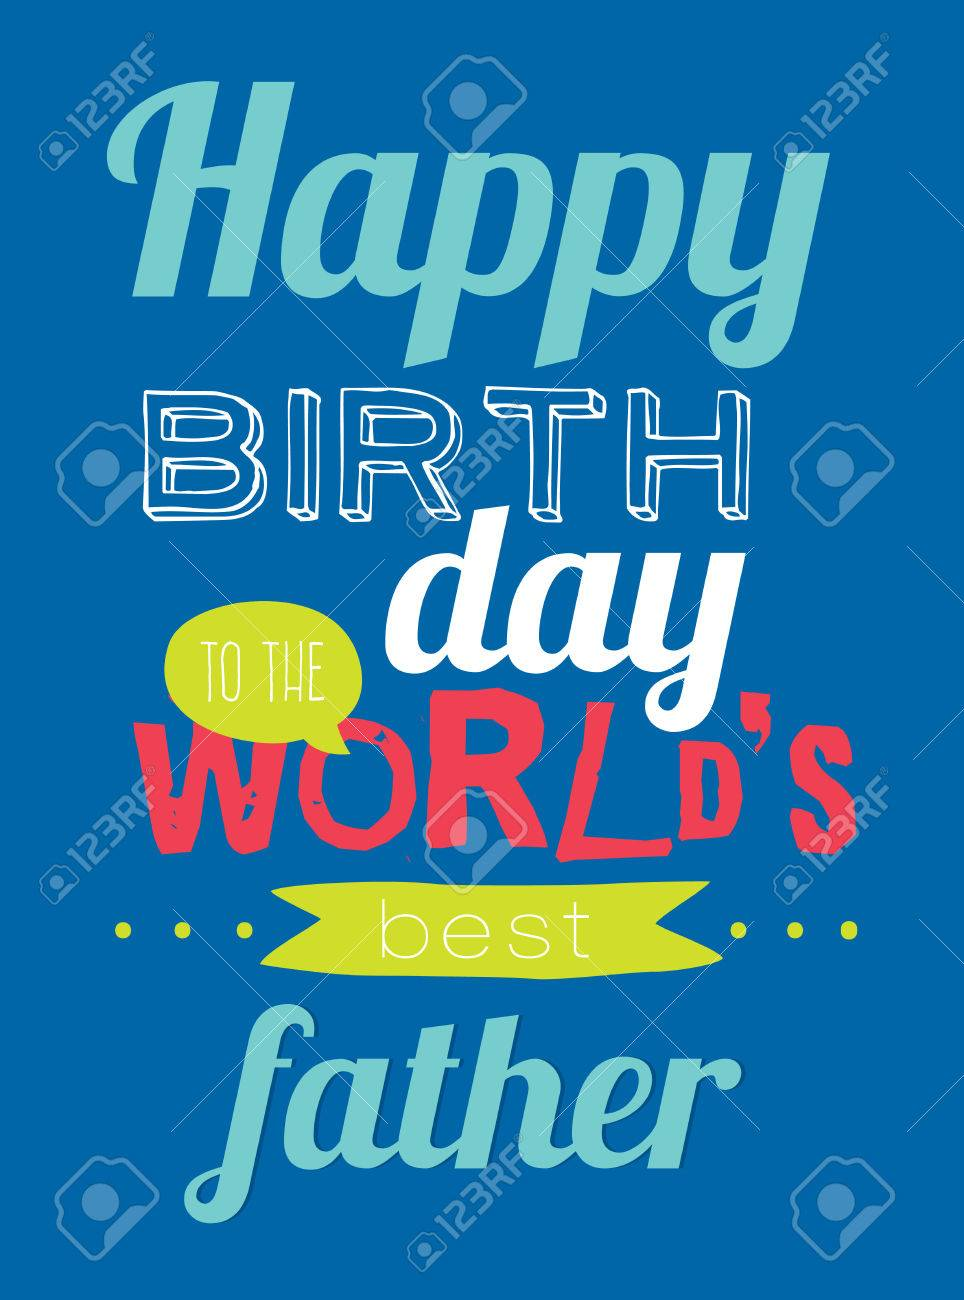 collection of unusual typographic birthday cards. stylish, Birthday card